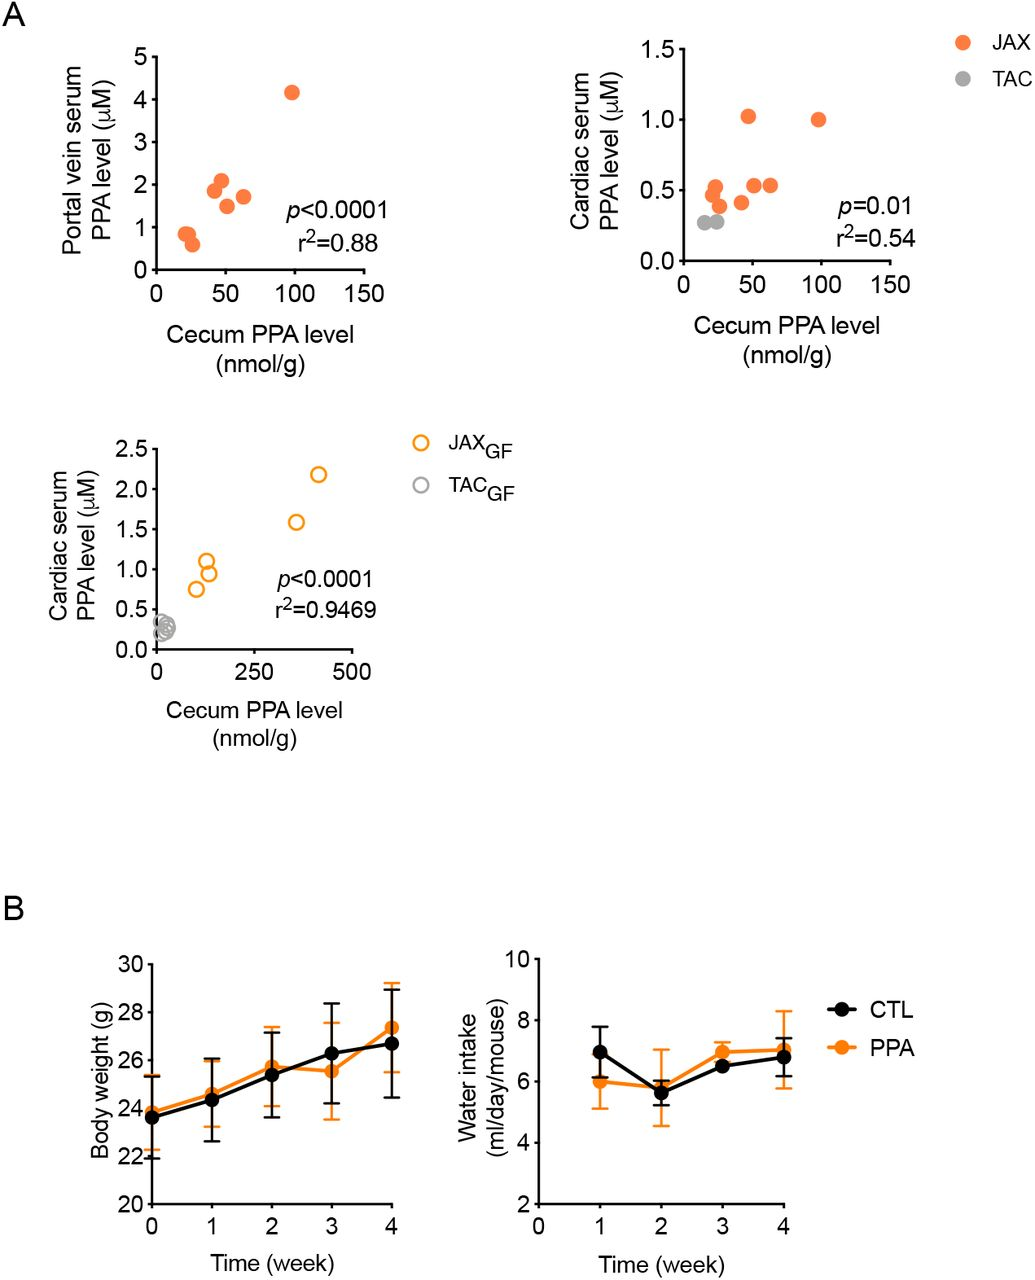 A. TAC mice were fed with PPA (0.4% in drinking water) or regular water (CTL) for 4 weeks. A group of mice were sacrificed after overnight fasting, and liver RNAs were isolated. The other group of mice received APAP (300 mg/kg intraperitoneally) after overnight fasting. The mice were sacrificed after 6 h, followed by liver RNA isolation. Transcriptome profiles were obtained by RNA-sequencing TAC mice. B. JAX or TAC mice were sacrificed after overnight fasting, followed by isolation of mitochondria, cytosol (Cyt) and microsomes. Mitochondrial and cytosolic proteins (10 μg/well) as well as microsomal proteins (1, 5, or 10 μg/well) were analyzed by western blot using antibodies detecting VDAC (voltage-dependent anion channel; mitochondria marker), α-tubulin (cytosol marker), and calnexin (microsome marker). C. Basal hepatic Cyp2e1 mRNA levels in PPA-supplemented mice were measured by qRT-PCR. D. Gut-microbiota transplanted mice were sacrificed after overnight fasting, and microsomal CYP2E1 and CYP1A2 levels were measured by western blot (left). APAP bioactivation levels (right) were determined by measuring APAP-GSH formation rate in the hepatic microsomes. E. Hepatic CYP2E1 activity levels were determined by measuring the rate of chlorzoxazone to 6-hydroxychlorzoxazone conversion rate in the hepatic microsomes. F. Mouse hepatic microsomes were incubated with chlorzoxazone (100 μM) in the presence of PPA (1 mM) or p -nitrophenol (PNP; 1 mM; a known CYP2E1 substrate as a competitive inhibitor) for 30 min, and the extent of 6-hydroxychlorzoxazone production was compared. All data are shown as mean ± S.D.